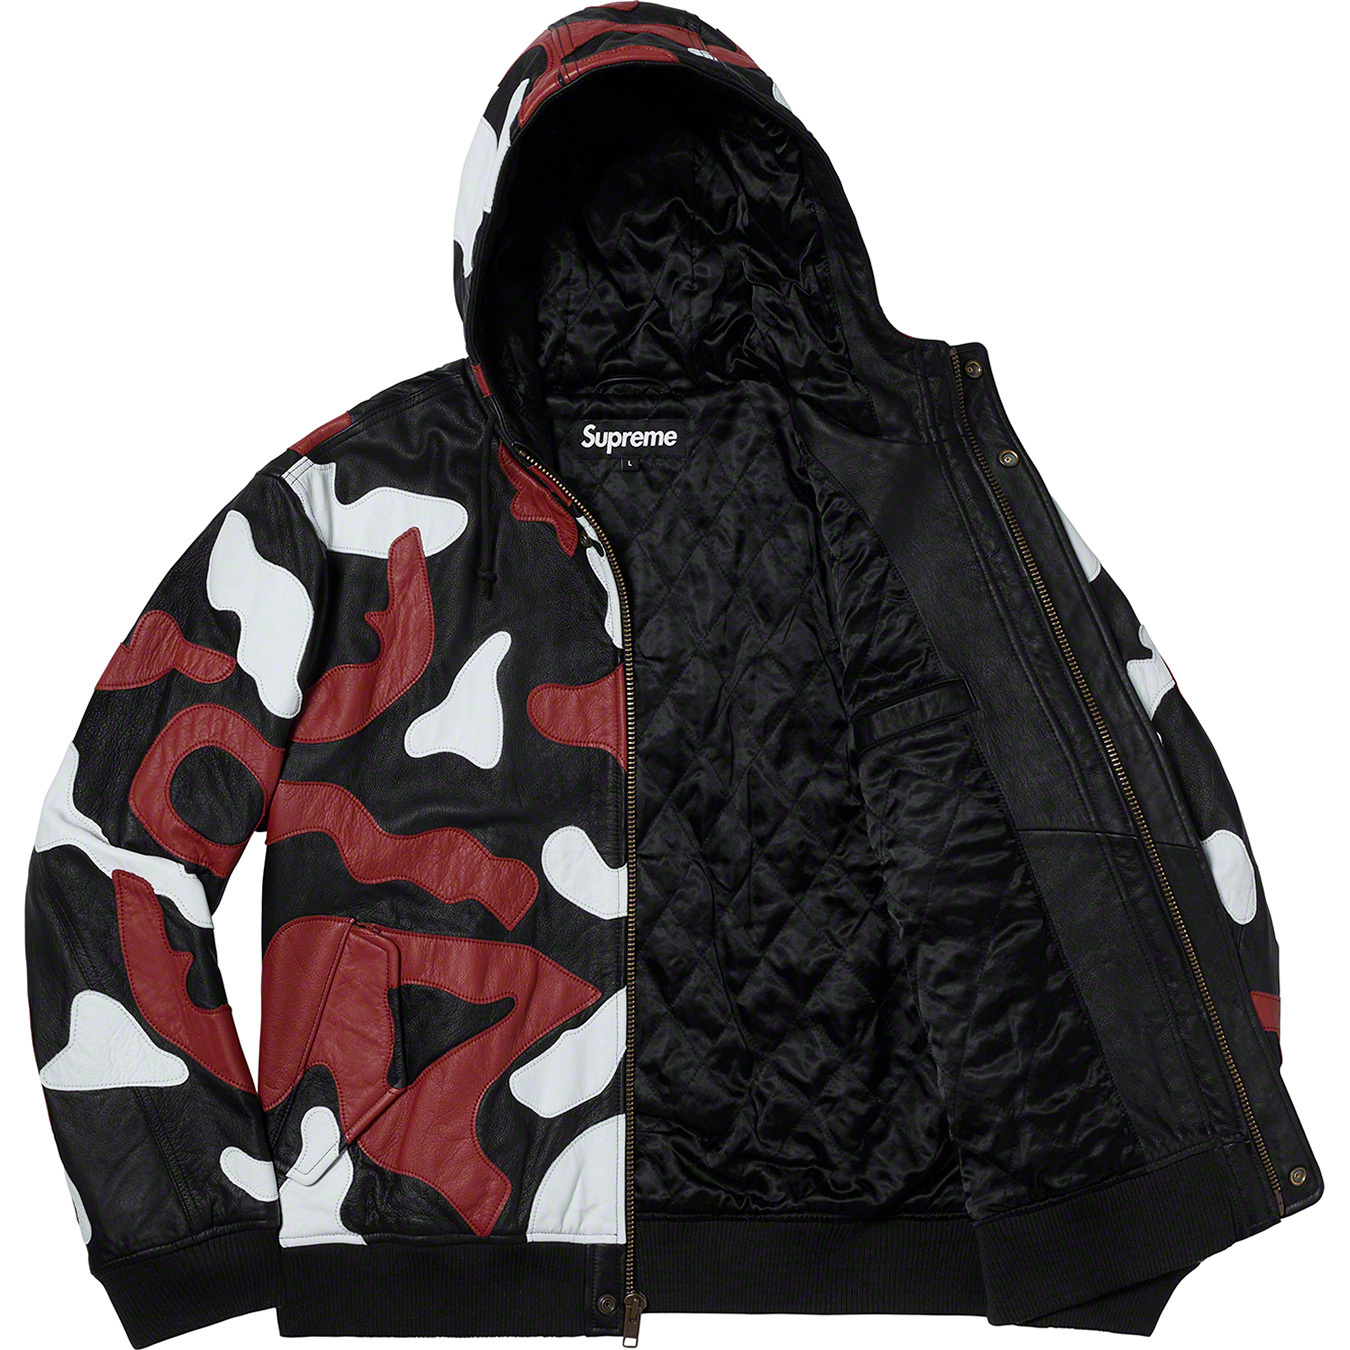 supreme-19aw-19fw-fall-winter-camo-leather-hooded-jacket